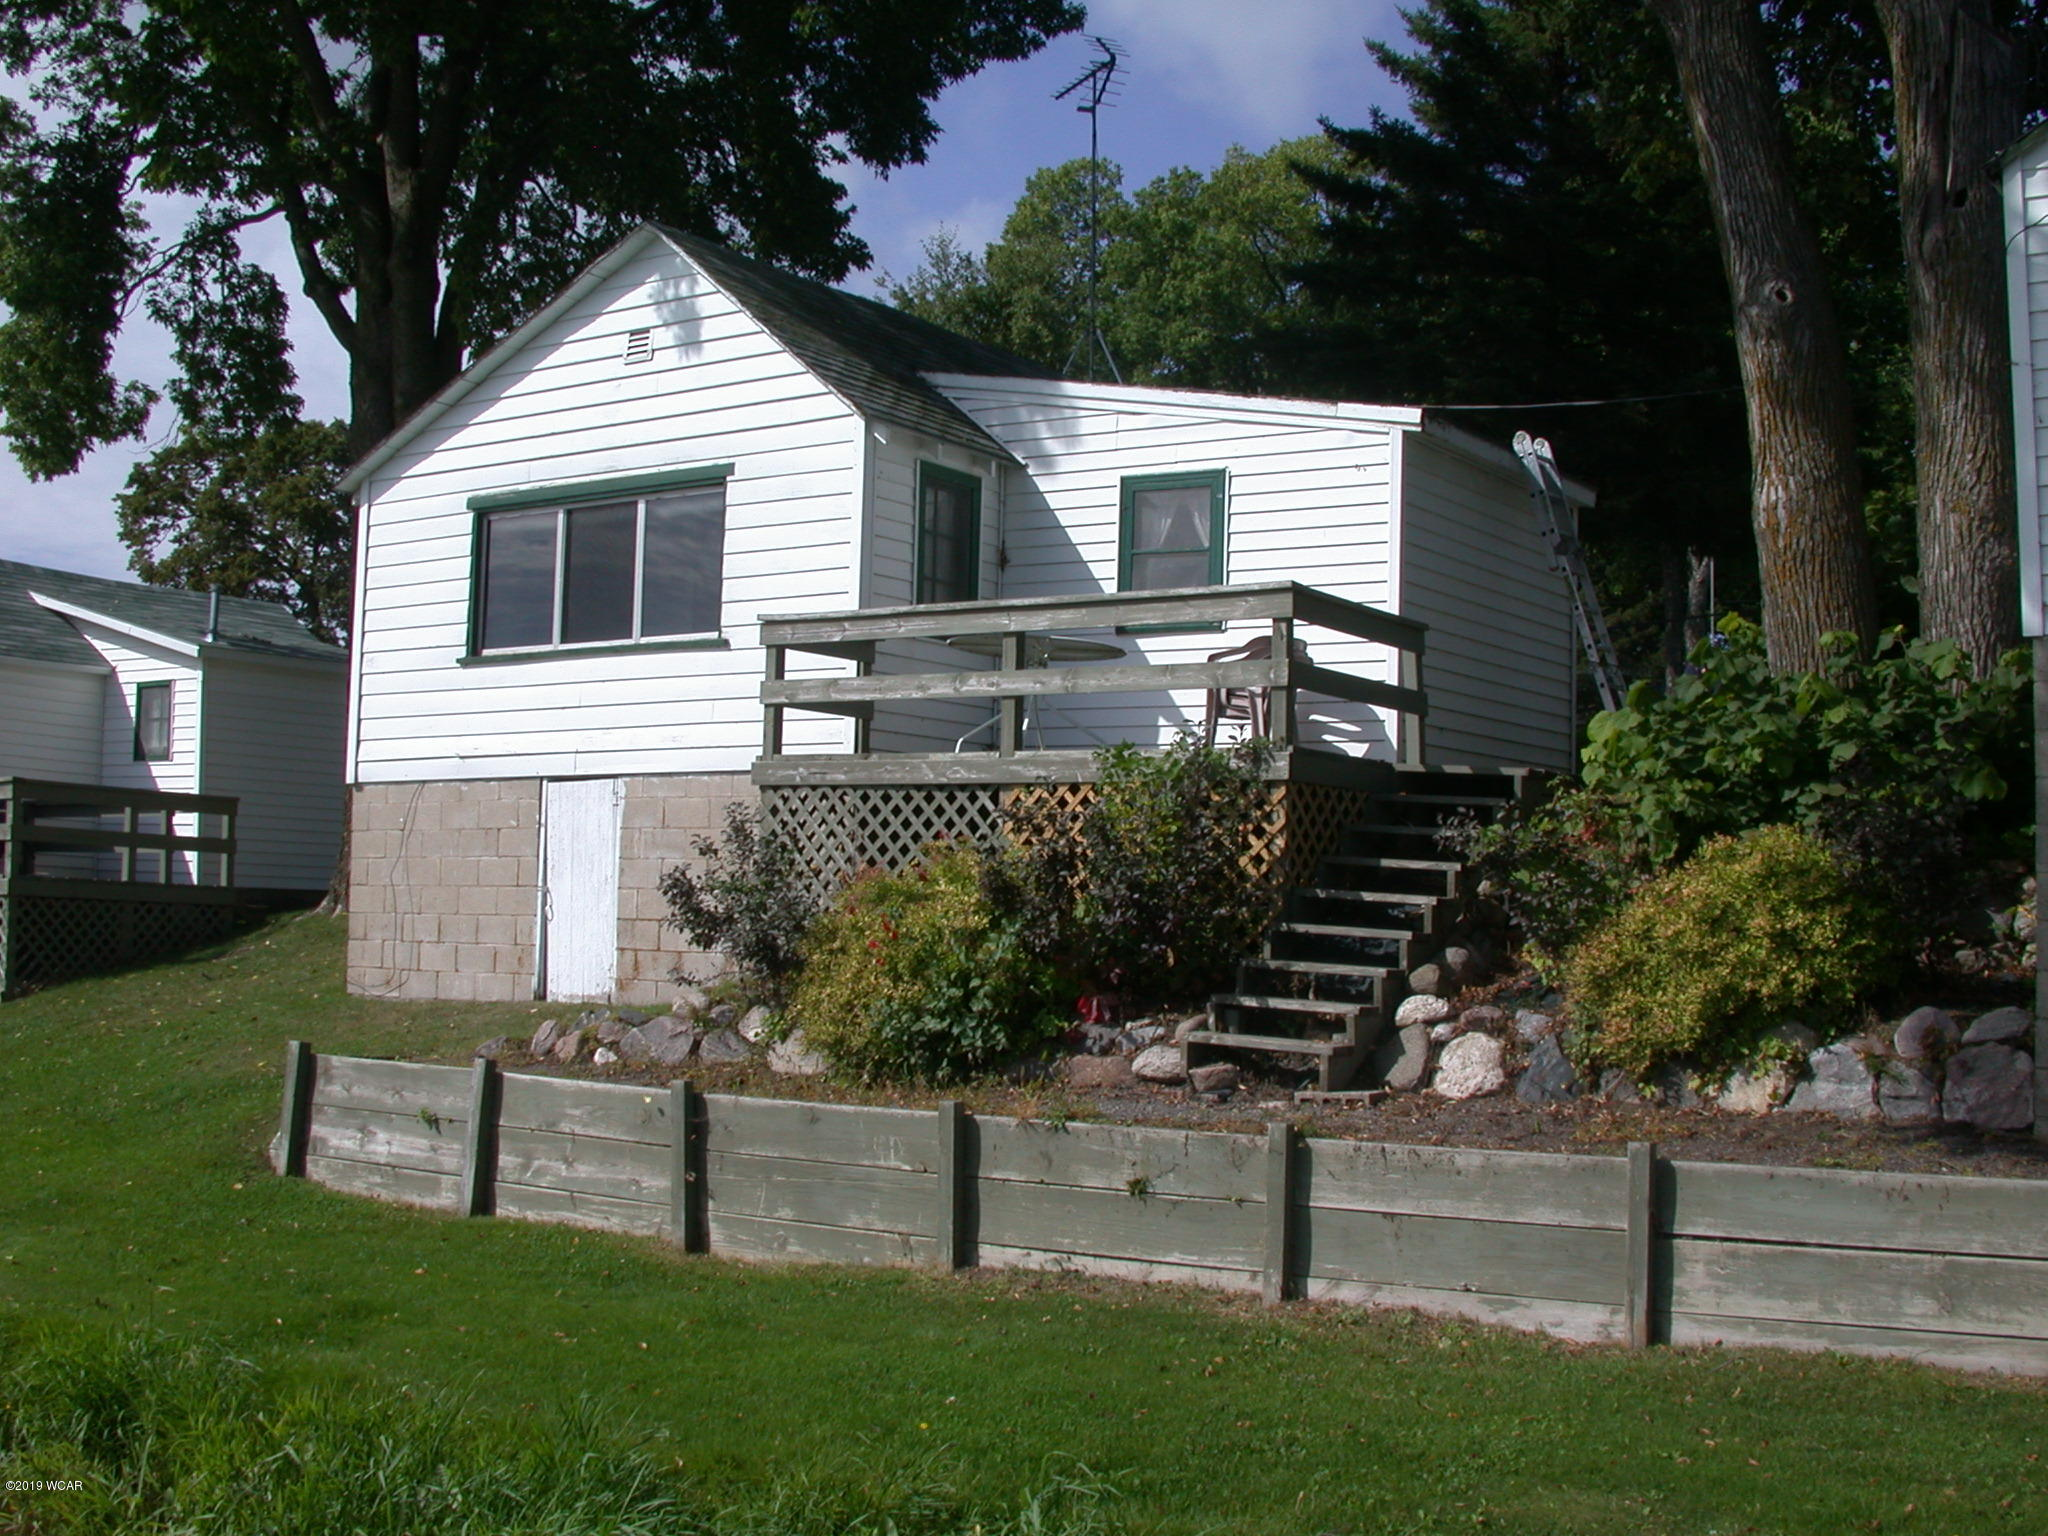 6231 150th Avenue,Spicer,1 Bedroom Bedrooms,1 BathroomBathrooms,Single Family,150th Avenue,6033563